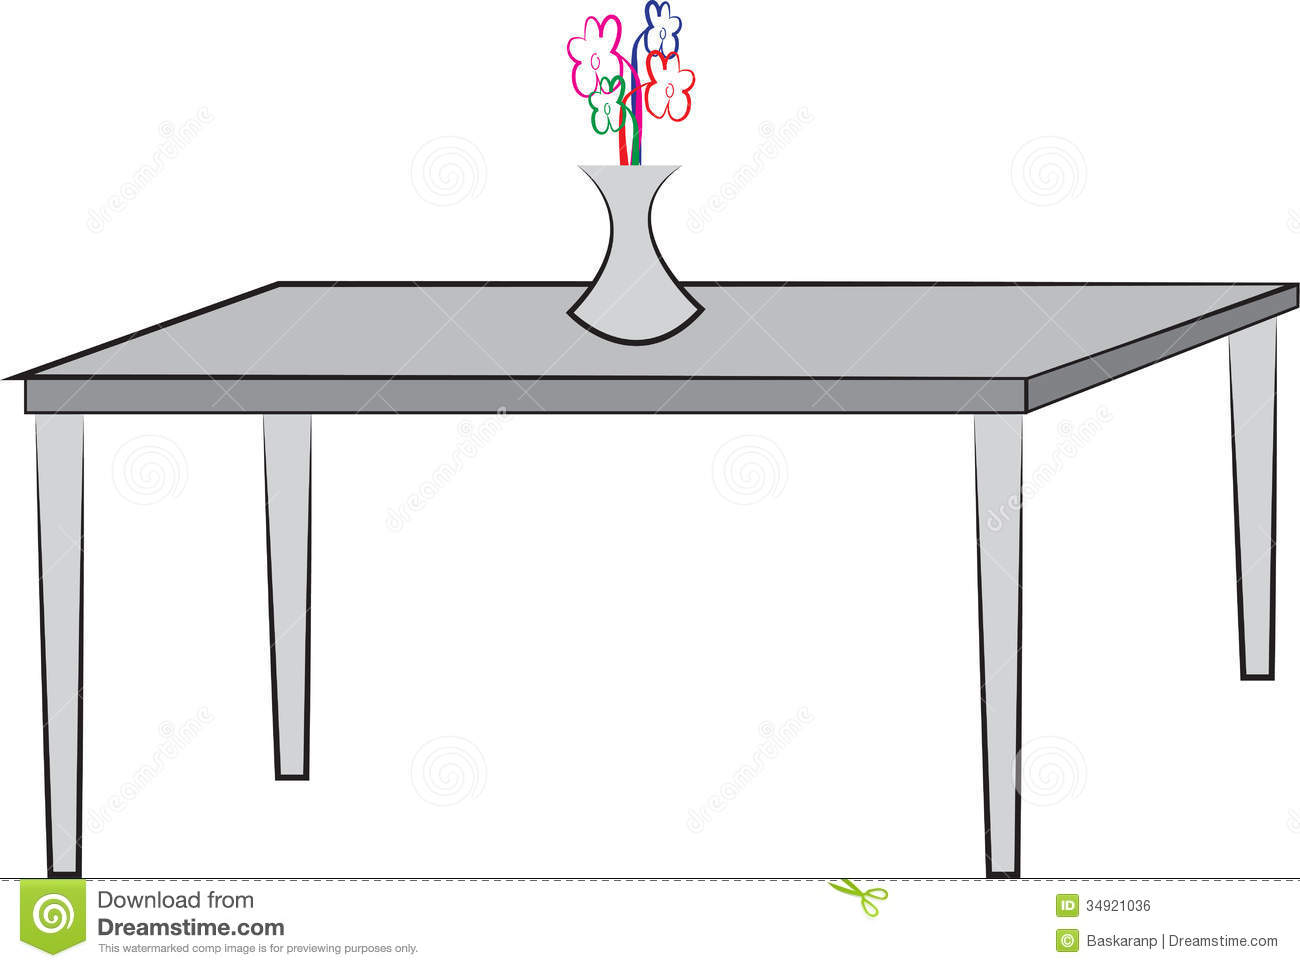 Dessin simple de table image libre de droits image 34921036 - Table de dessin ikea ...